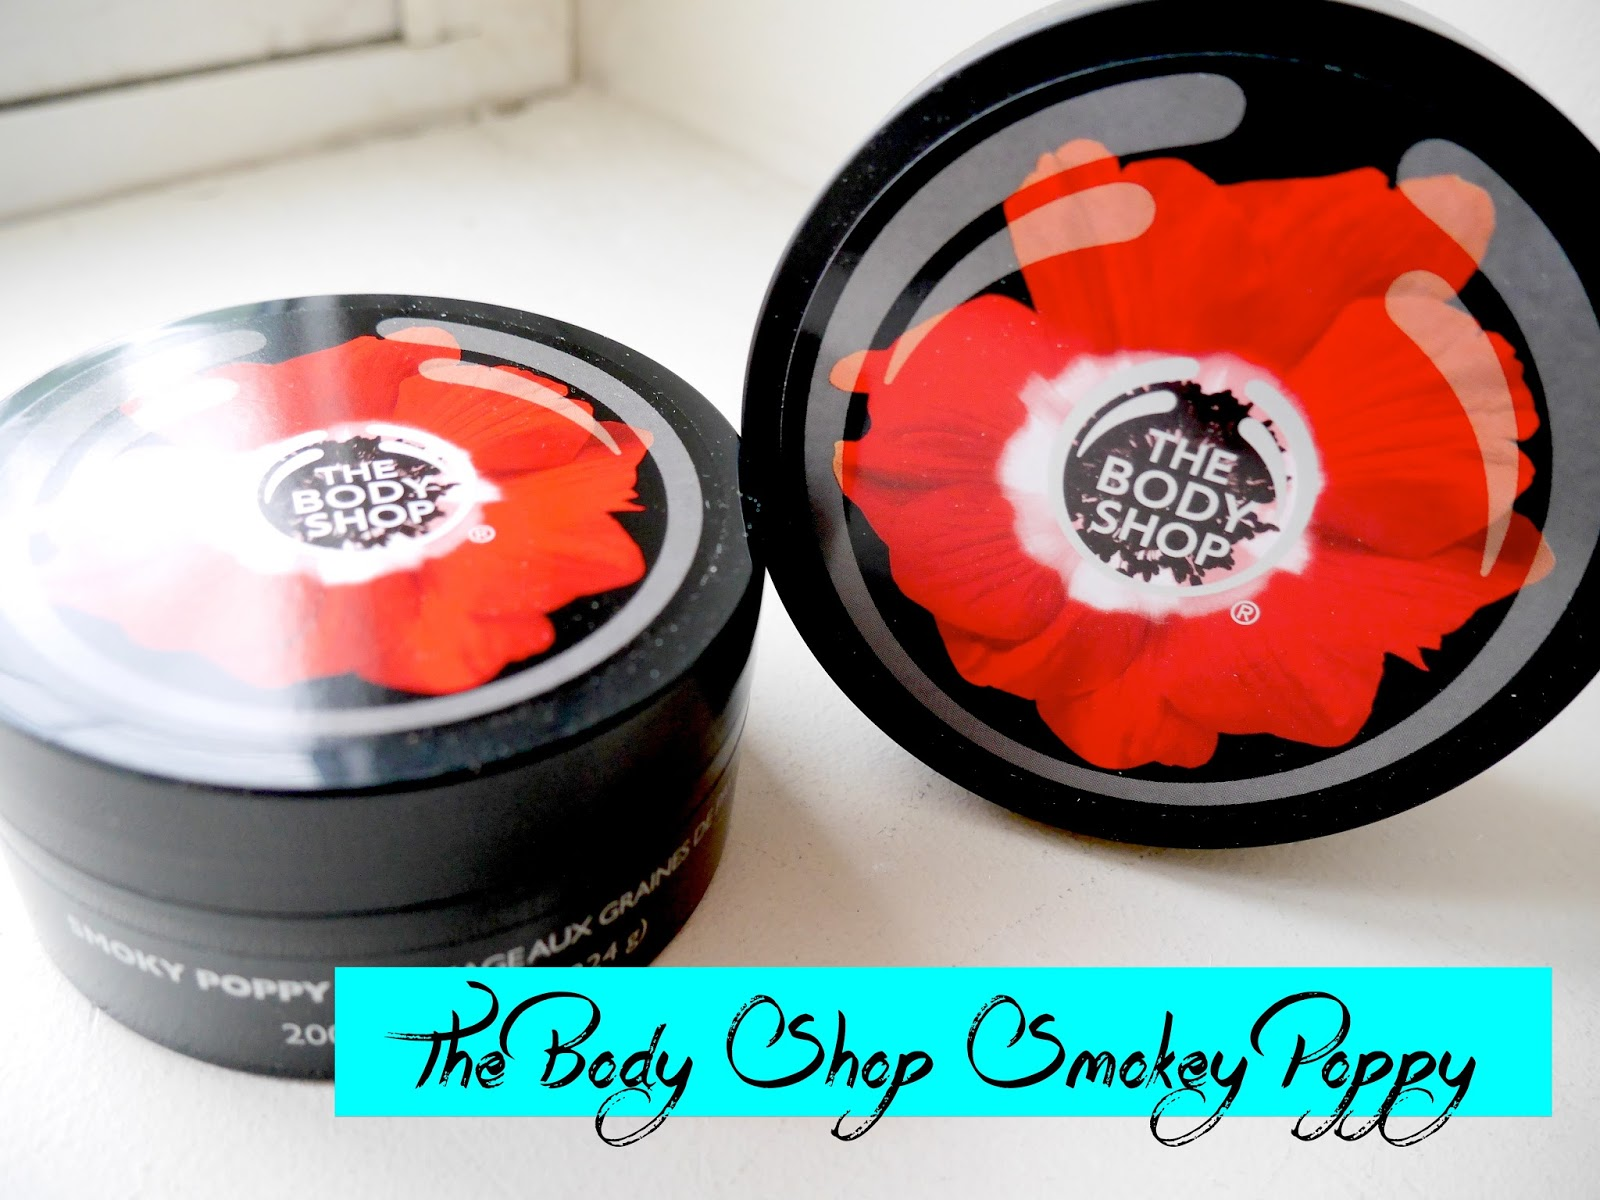 the body shop smoky poppy gommage scrub body butter review